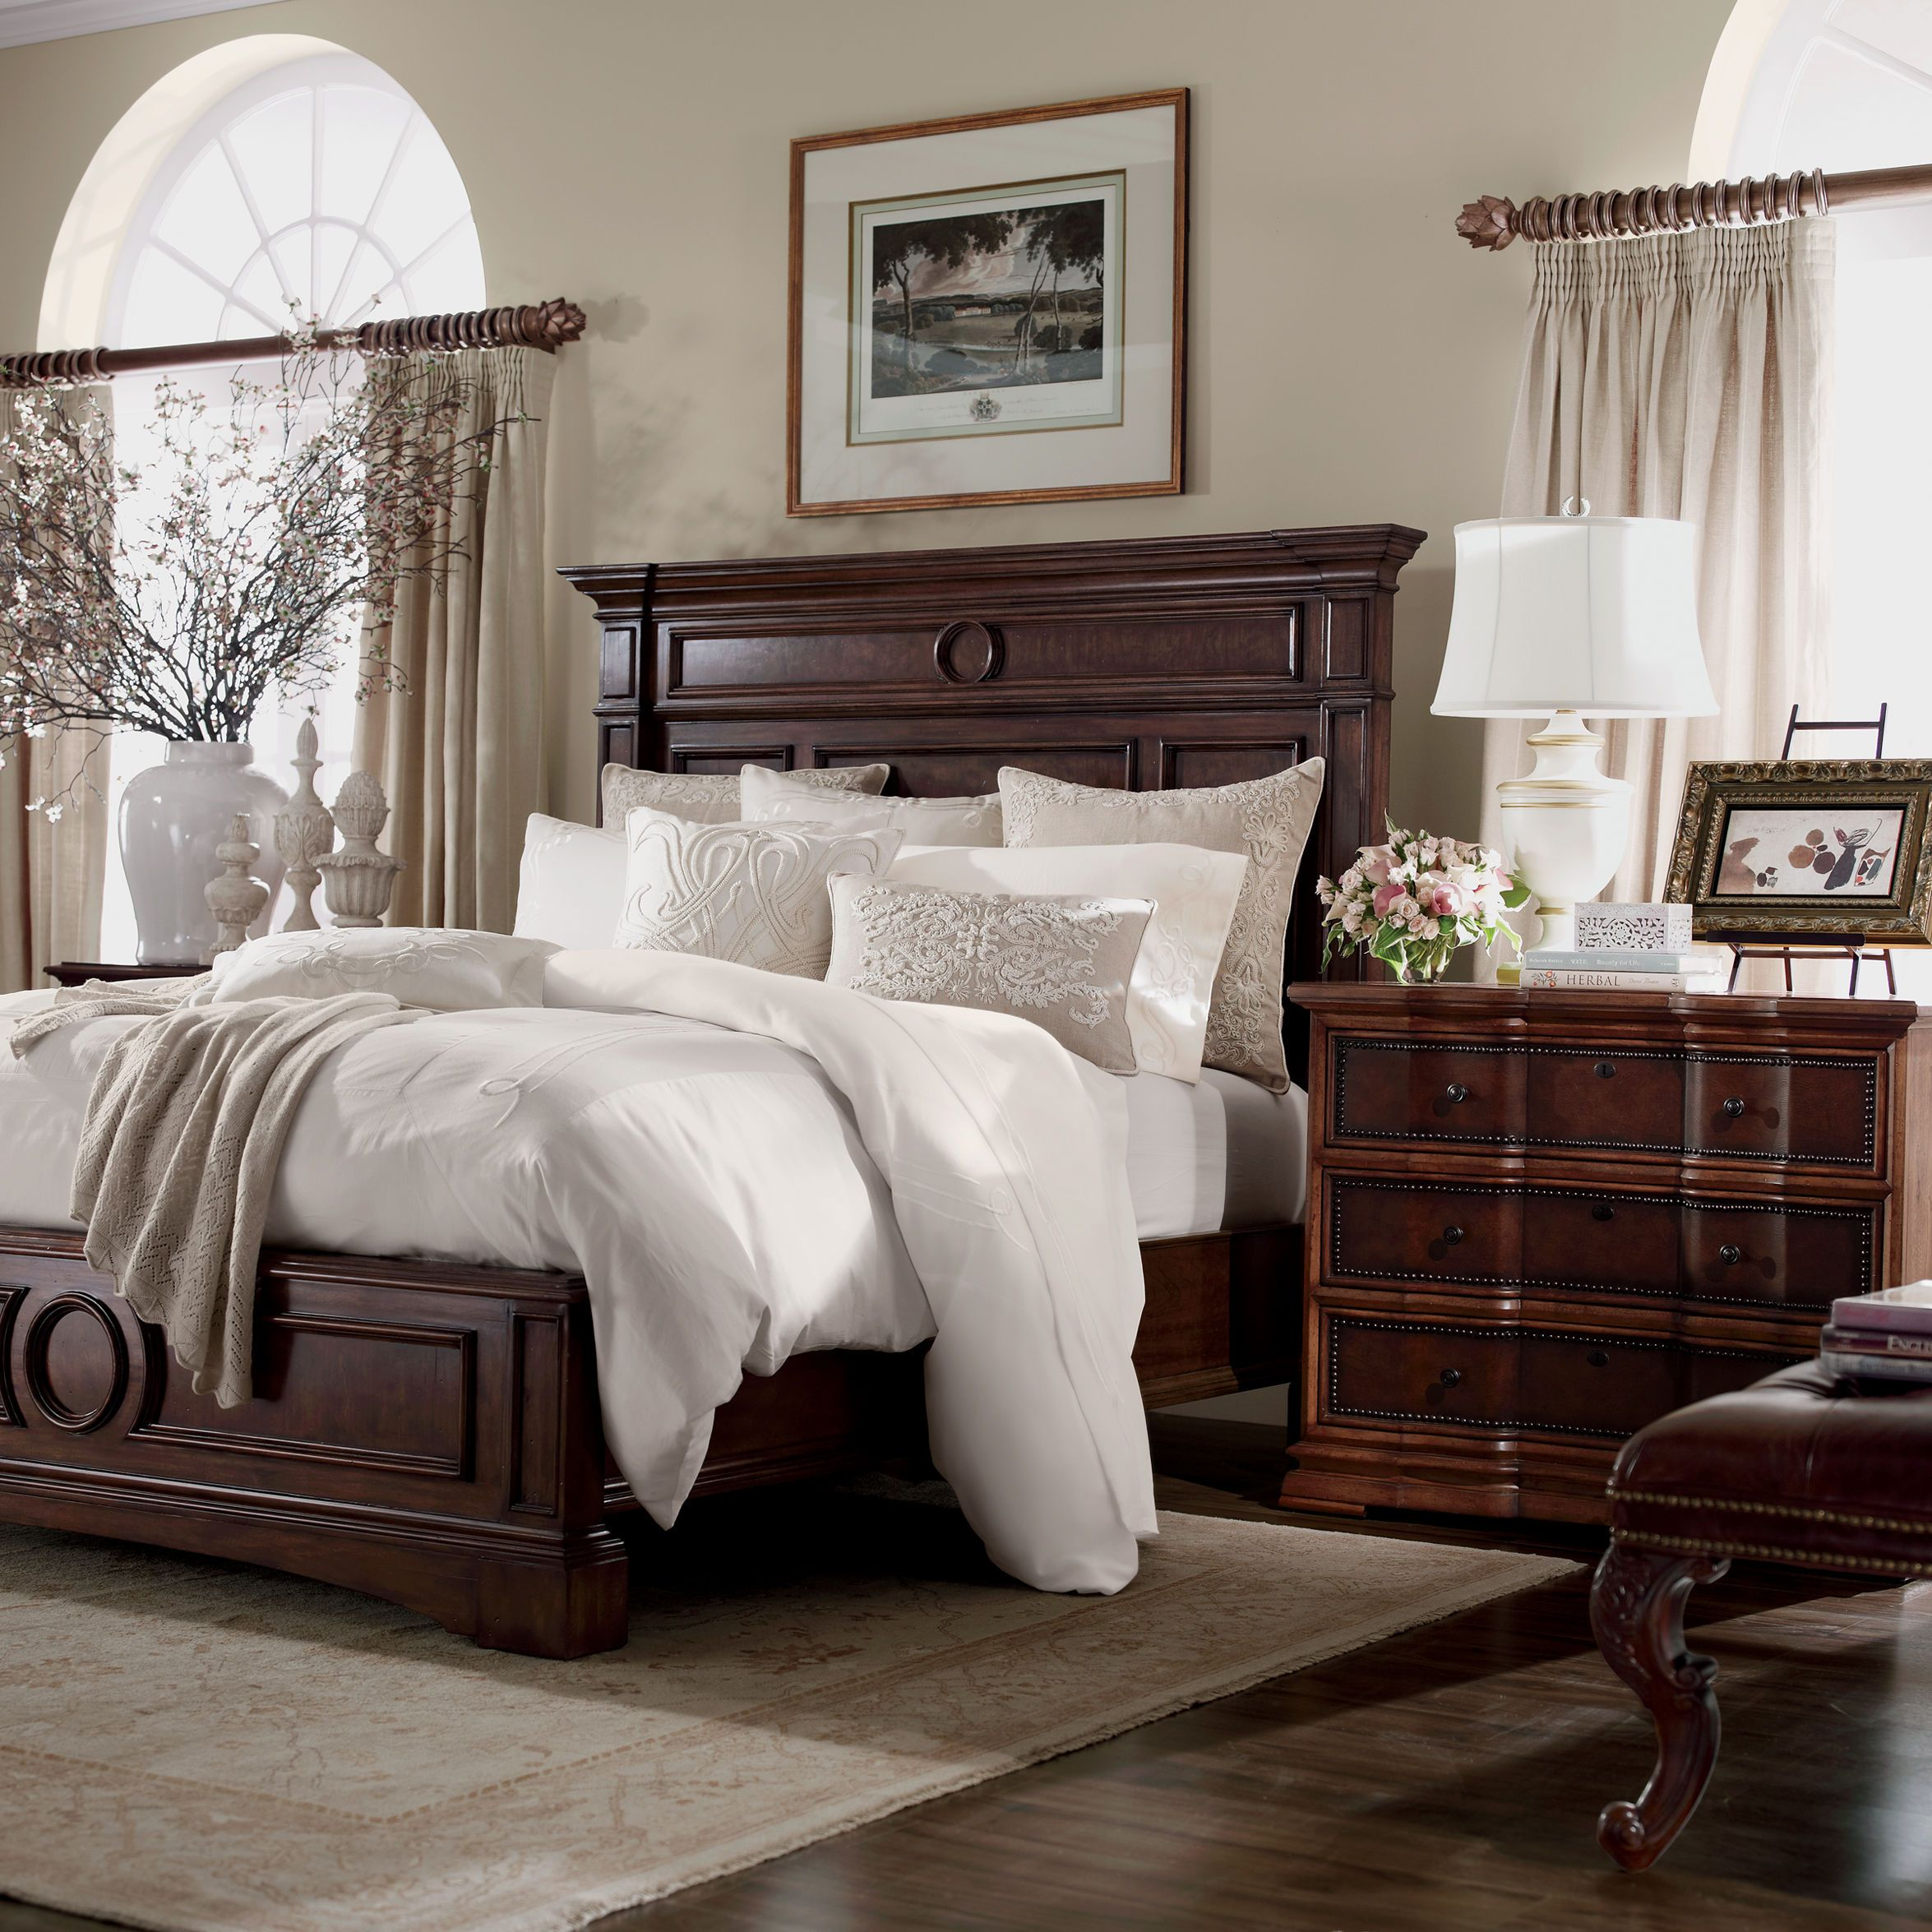 Warwick Bed - Ethan Allen ' Place Home